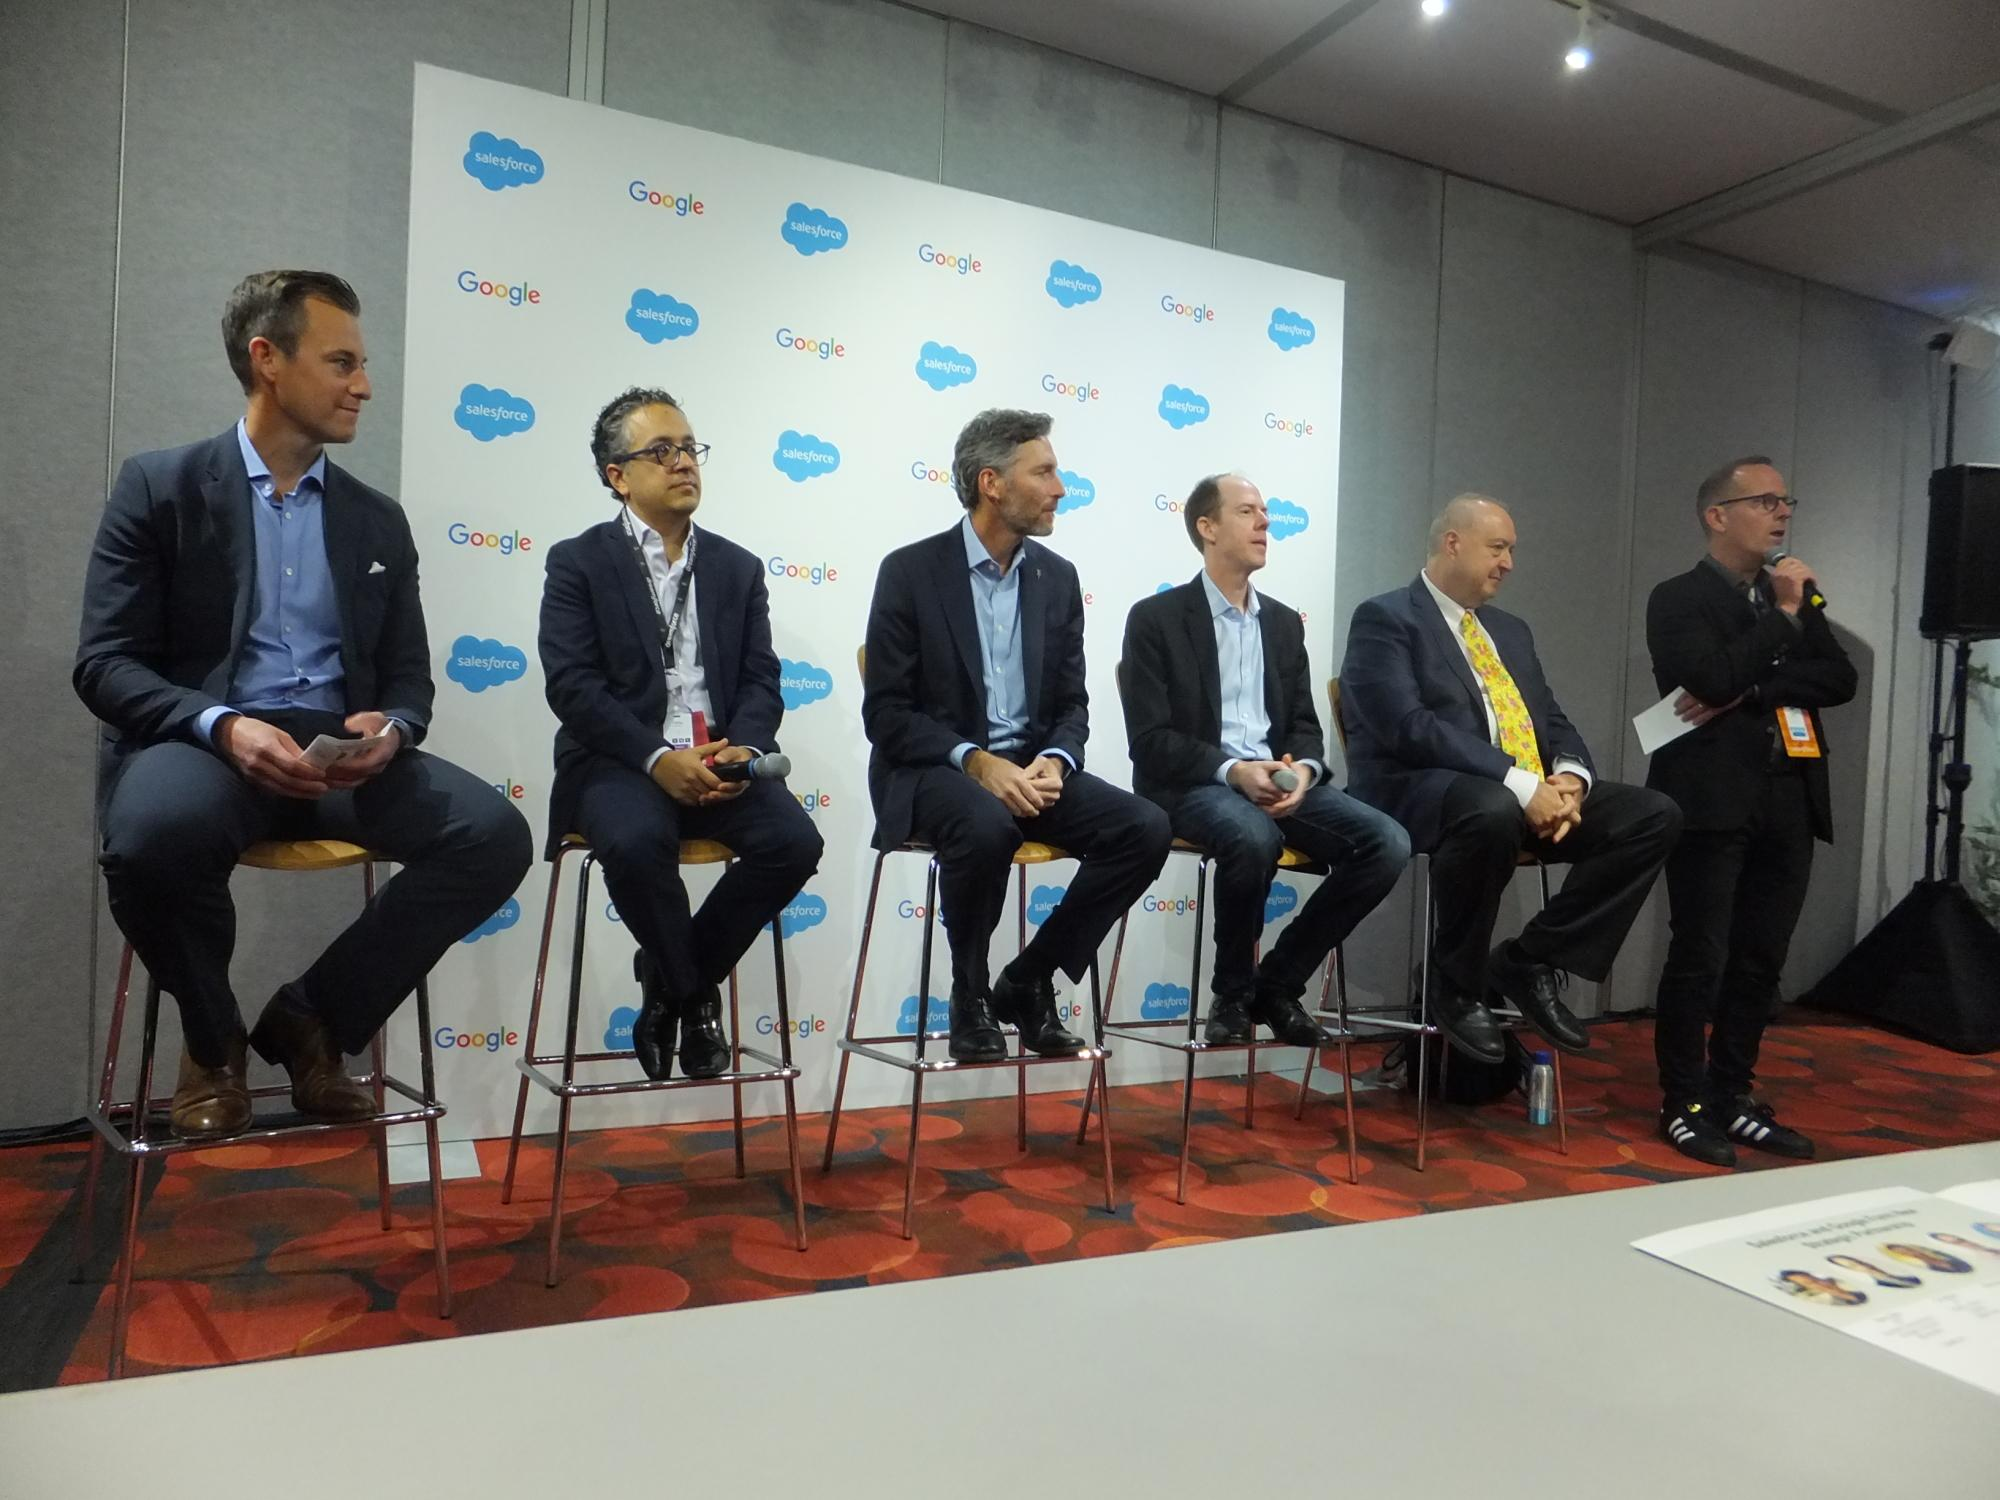 Die Verkünder der Salesforce-Google-Partnerschaft (v.l.n.r.):Ryan Aytay (Salesforce), Tariq Shaukat (Google), Mike Rosenbaum (Salesforce), Paul Muret (Google), Bob Stutz (Salesforce)